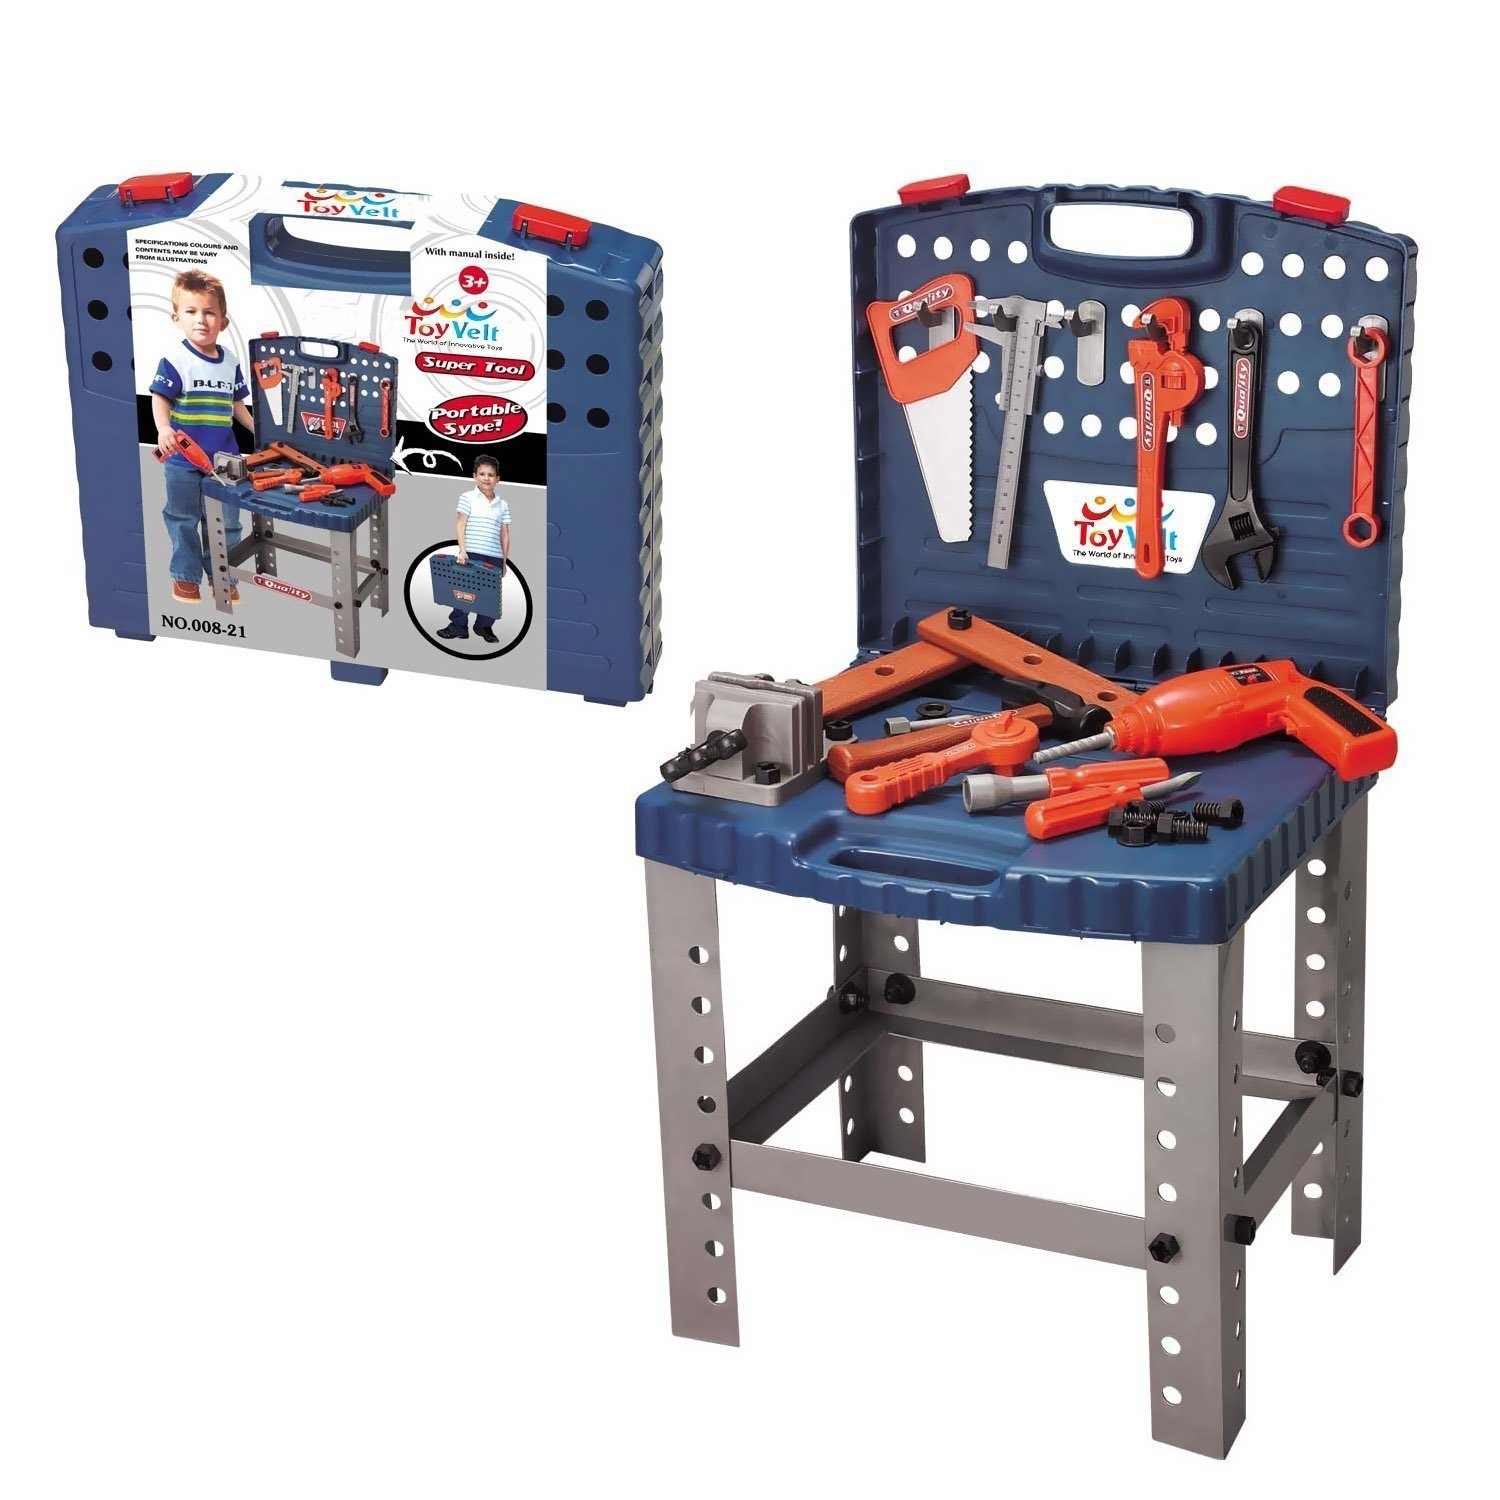 Kids Tool Workbench Toys Toys: Buy Online from Fishpond.com.au